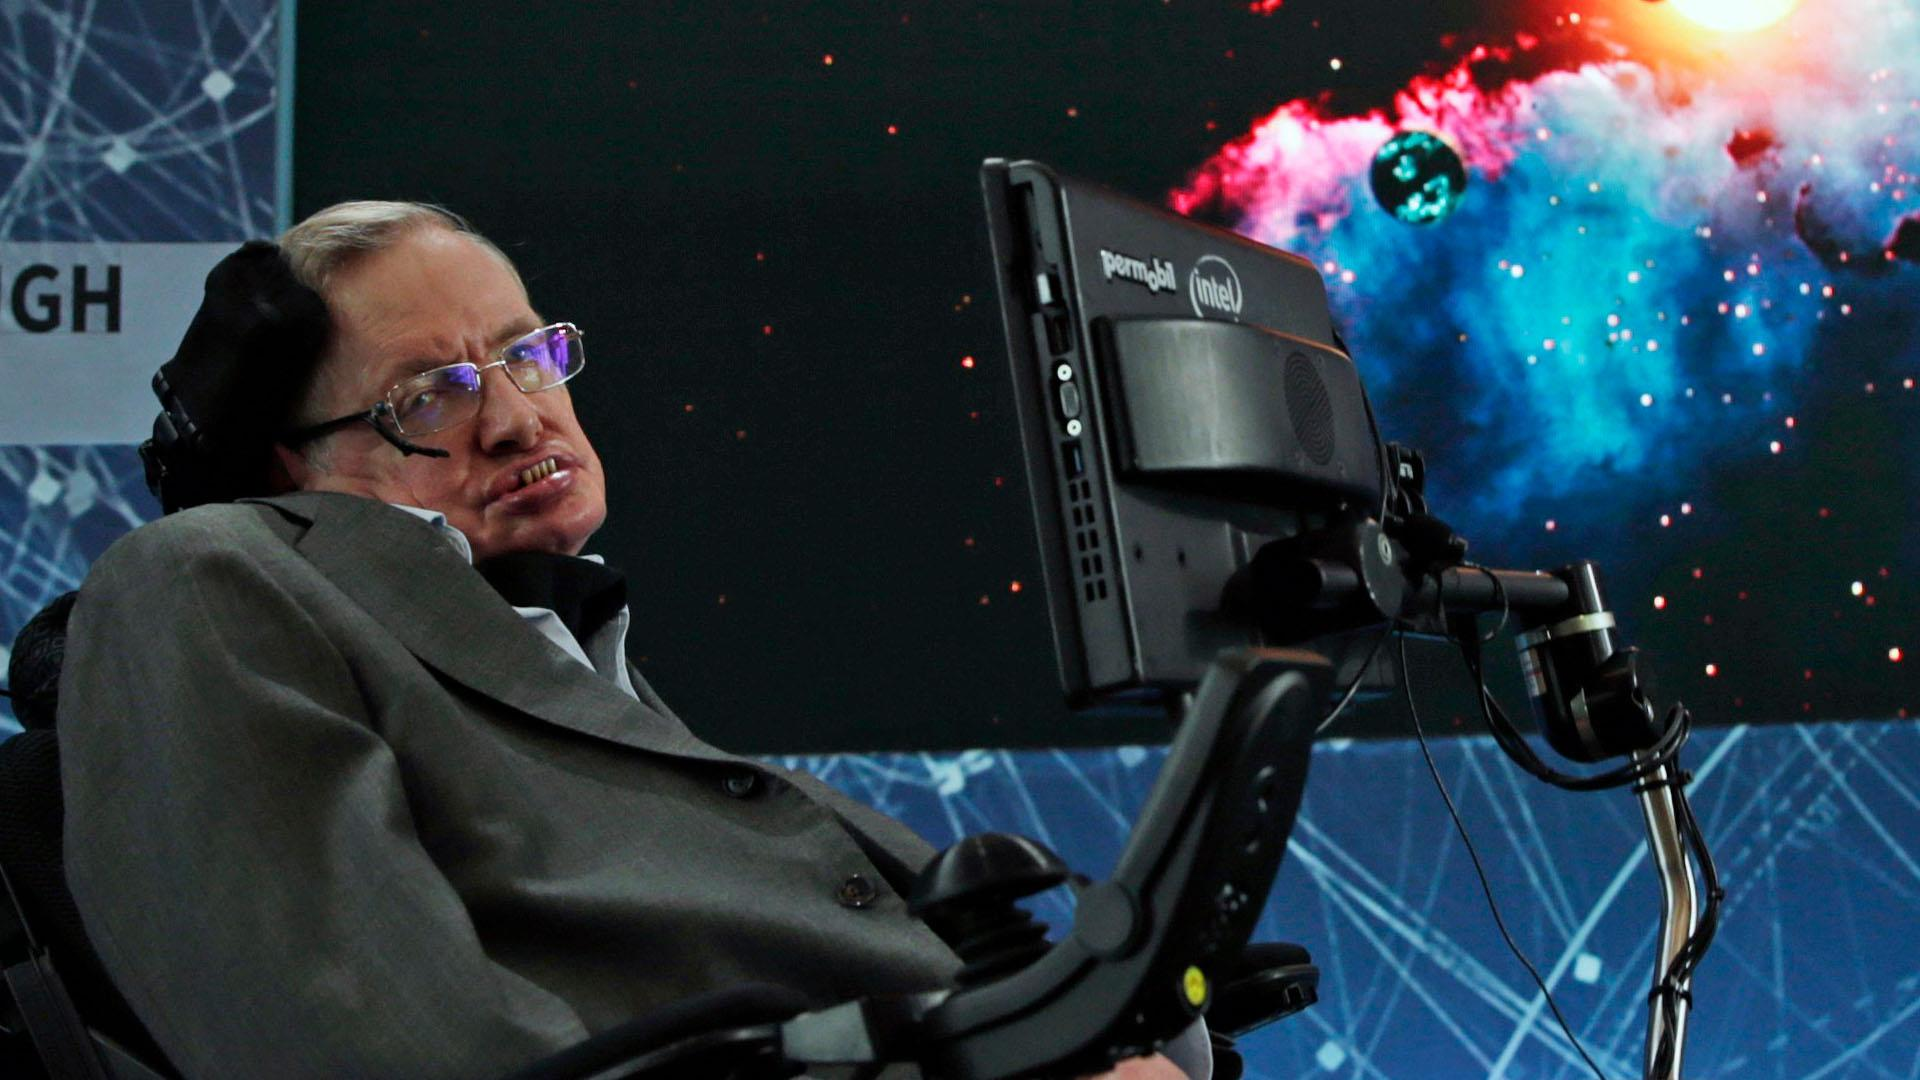 Animated Wallpapers For Pc Desktop Free Download Stephen Hawking Wallpaper